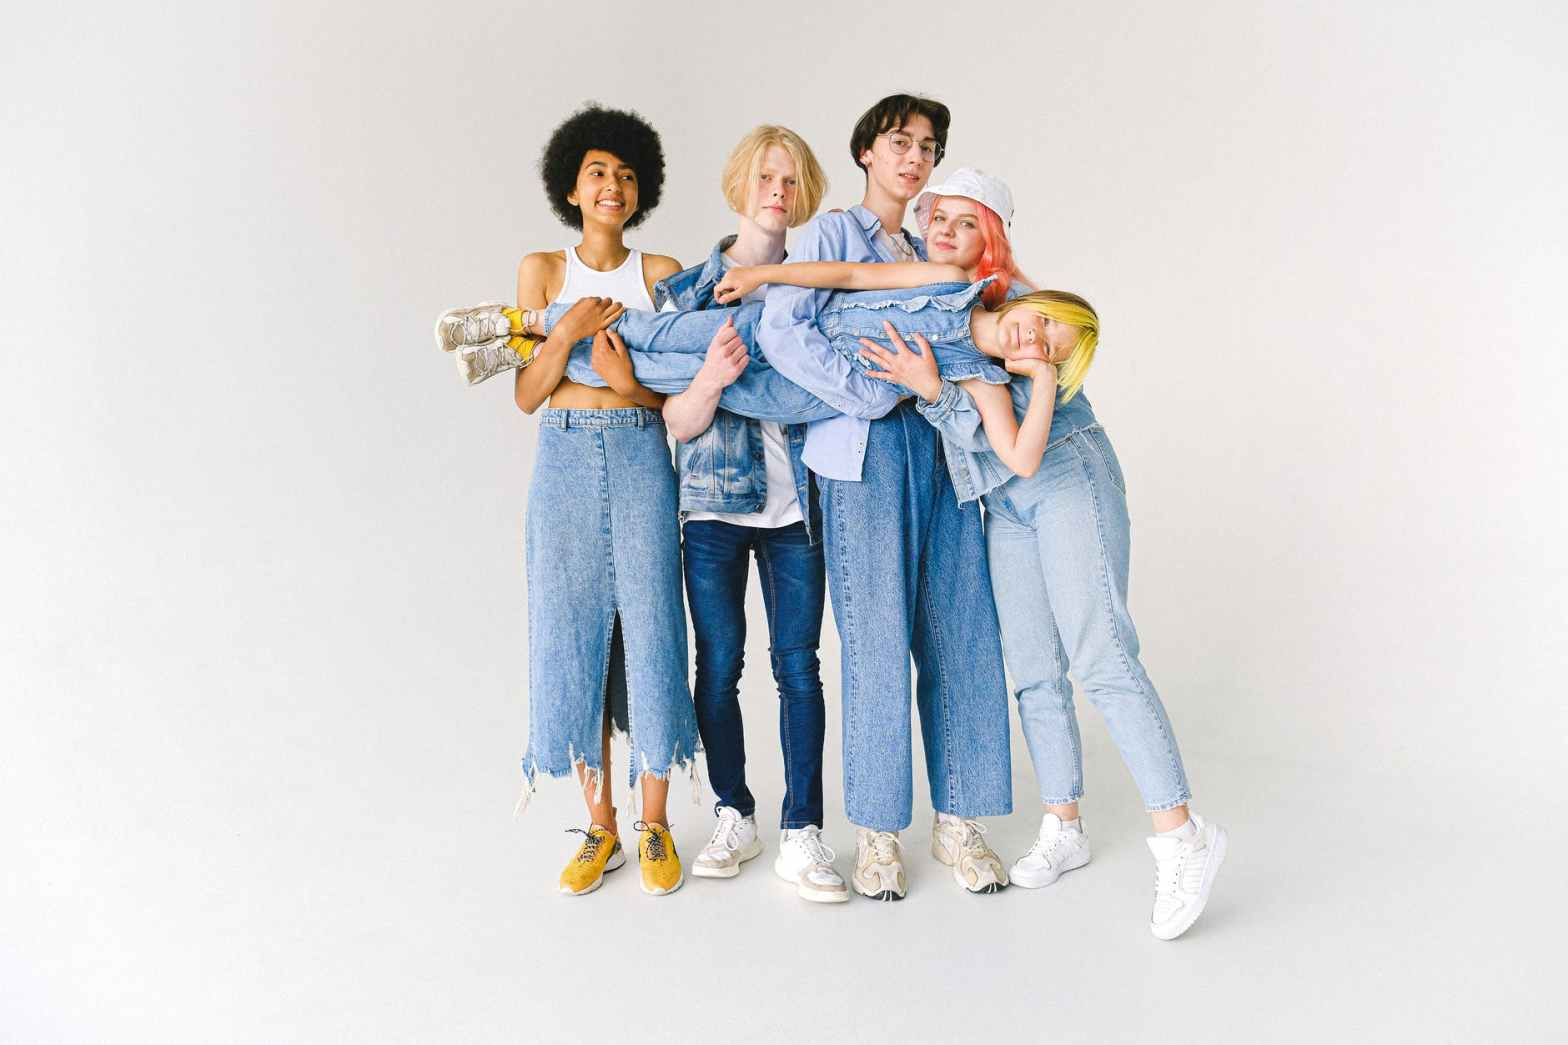 multiracial group of friends carrying child on hands